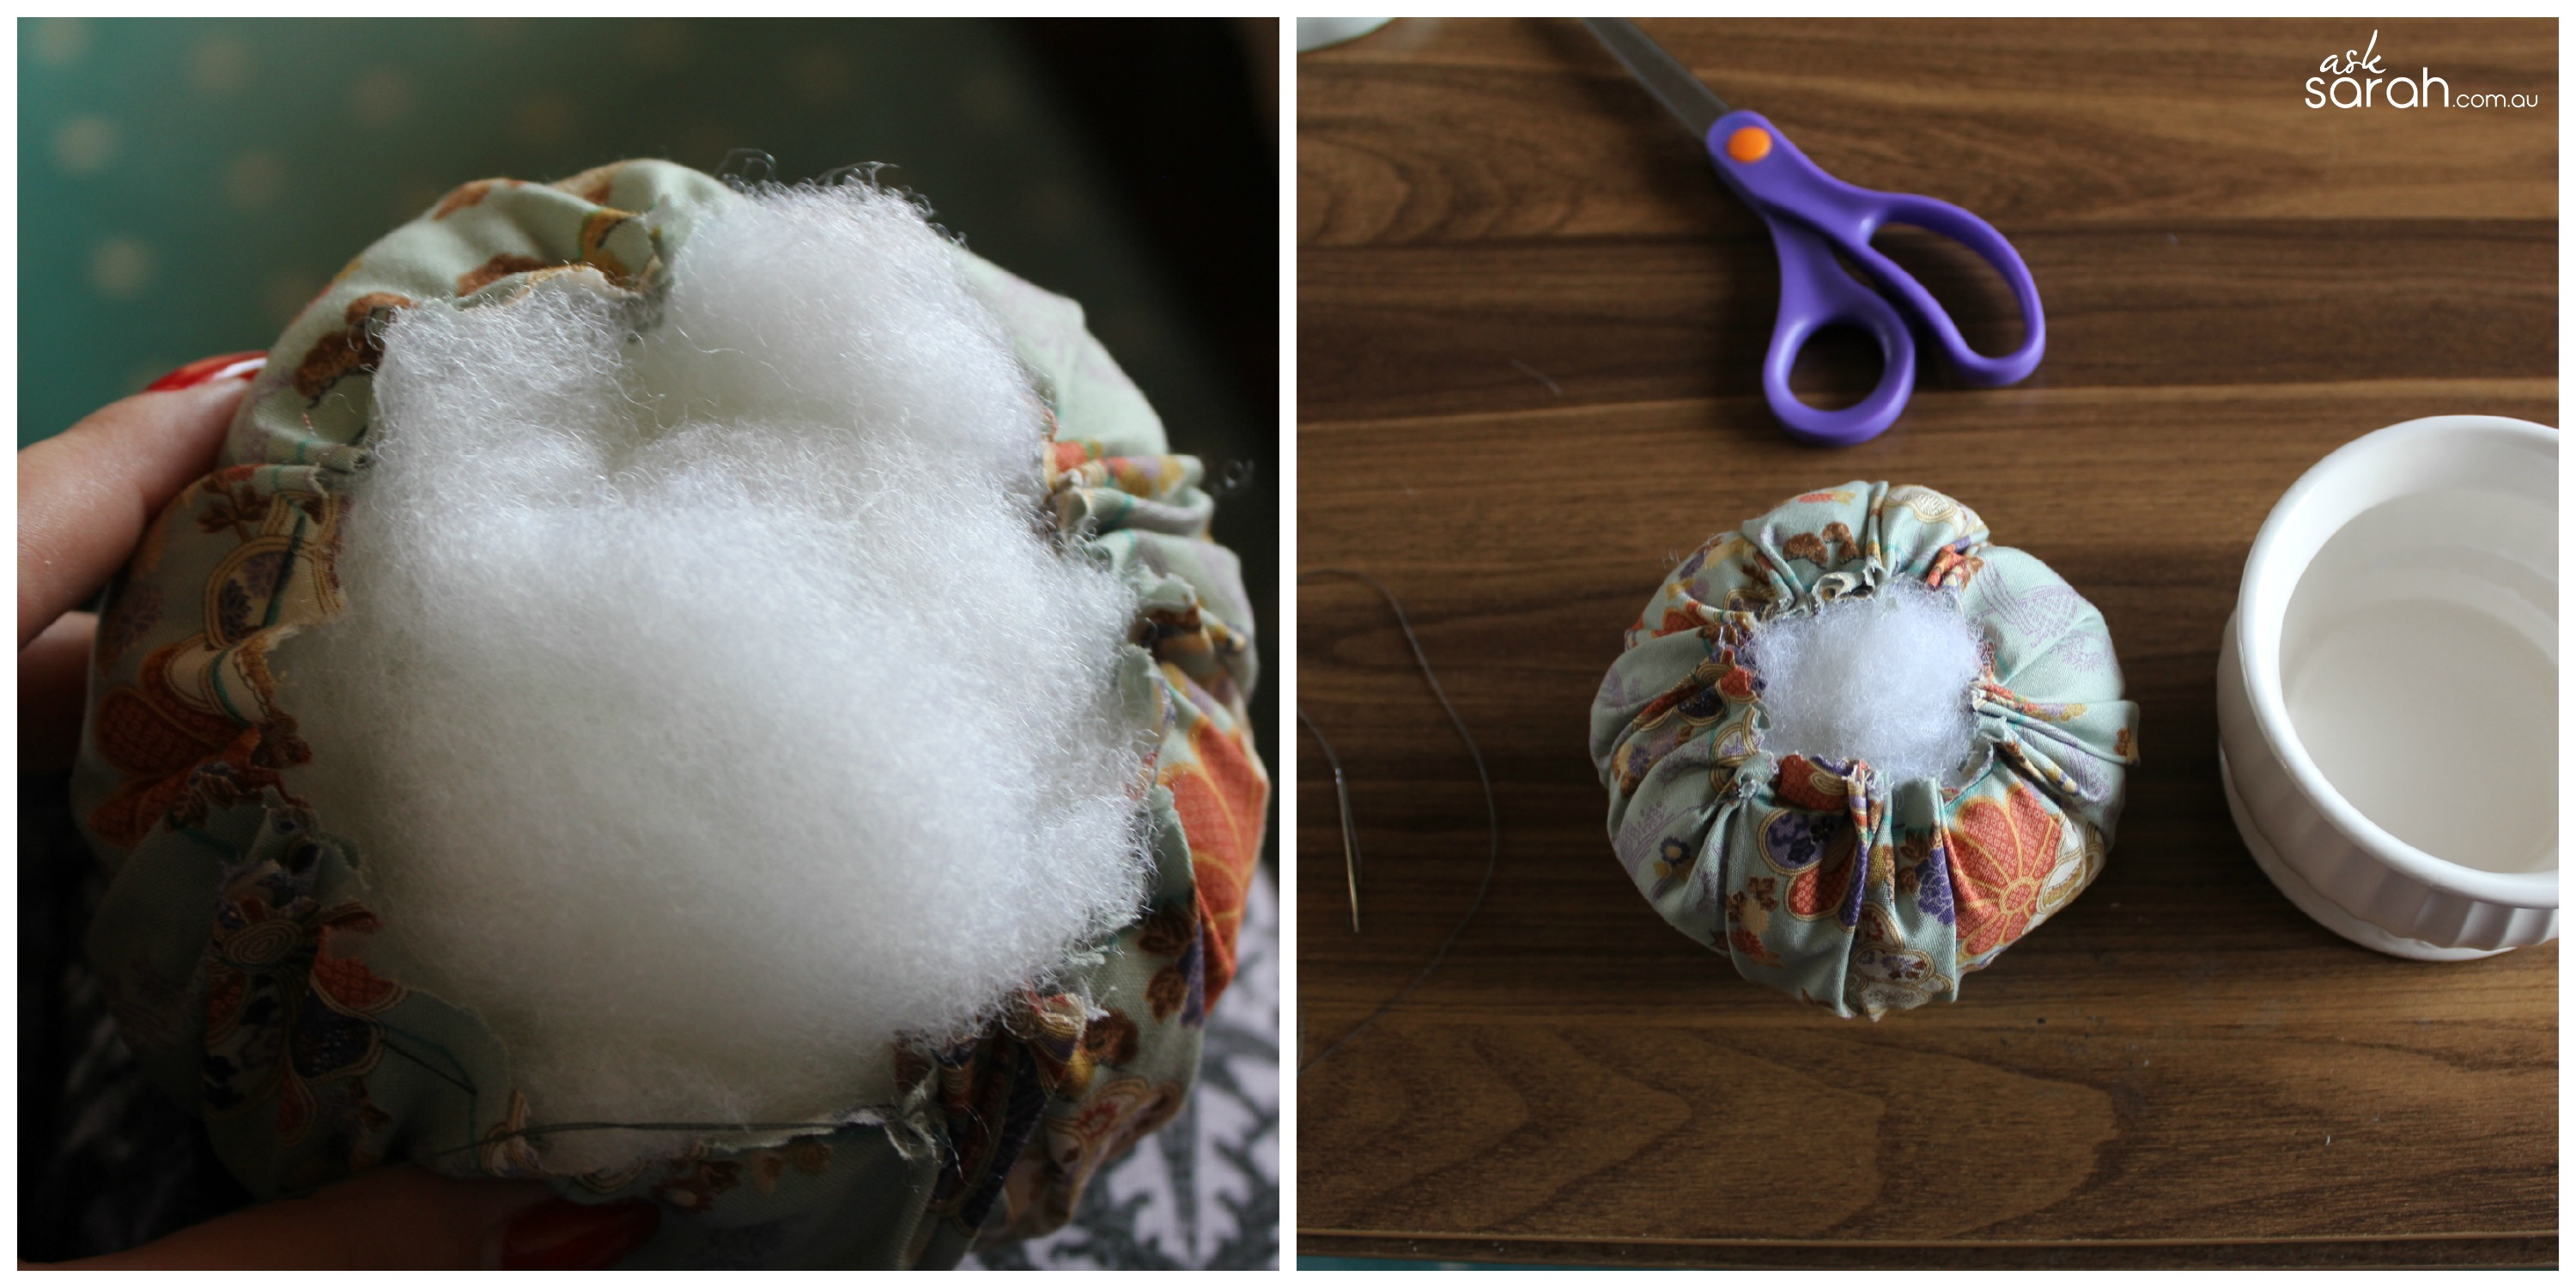 Teacup Pin Cushion Tutorial {Come & Say 'Hi' at the Sewing, Stitching & Handcraft Fair!}